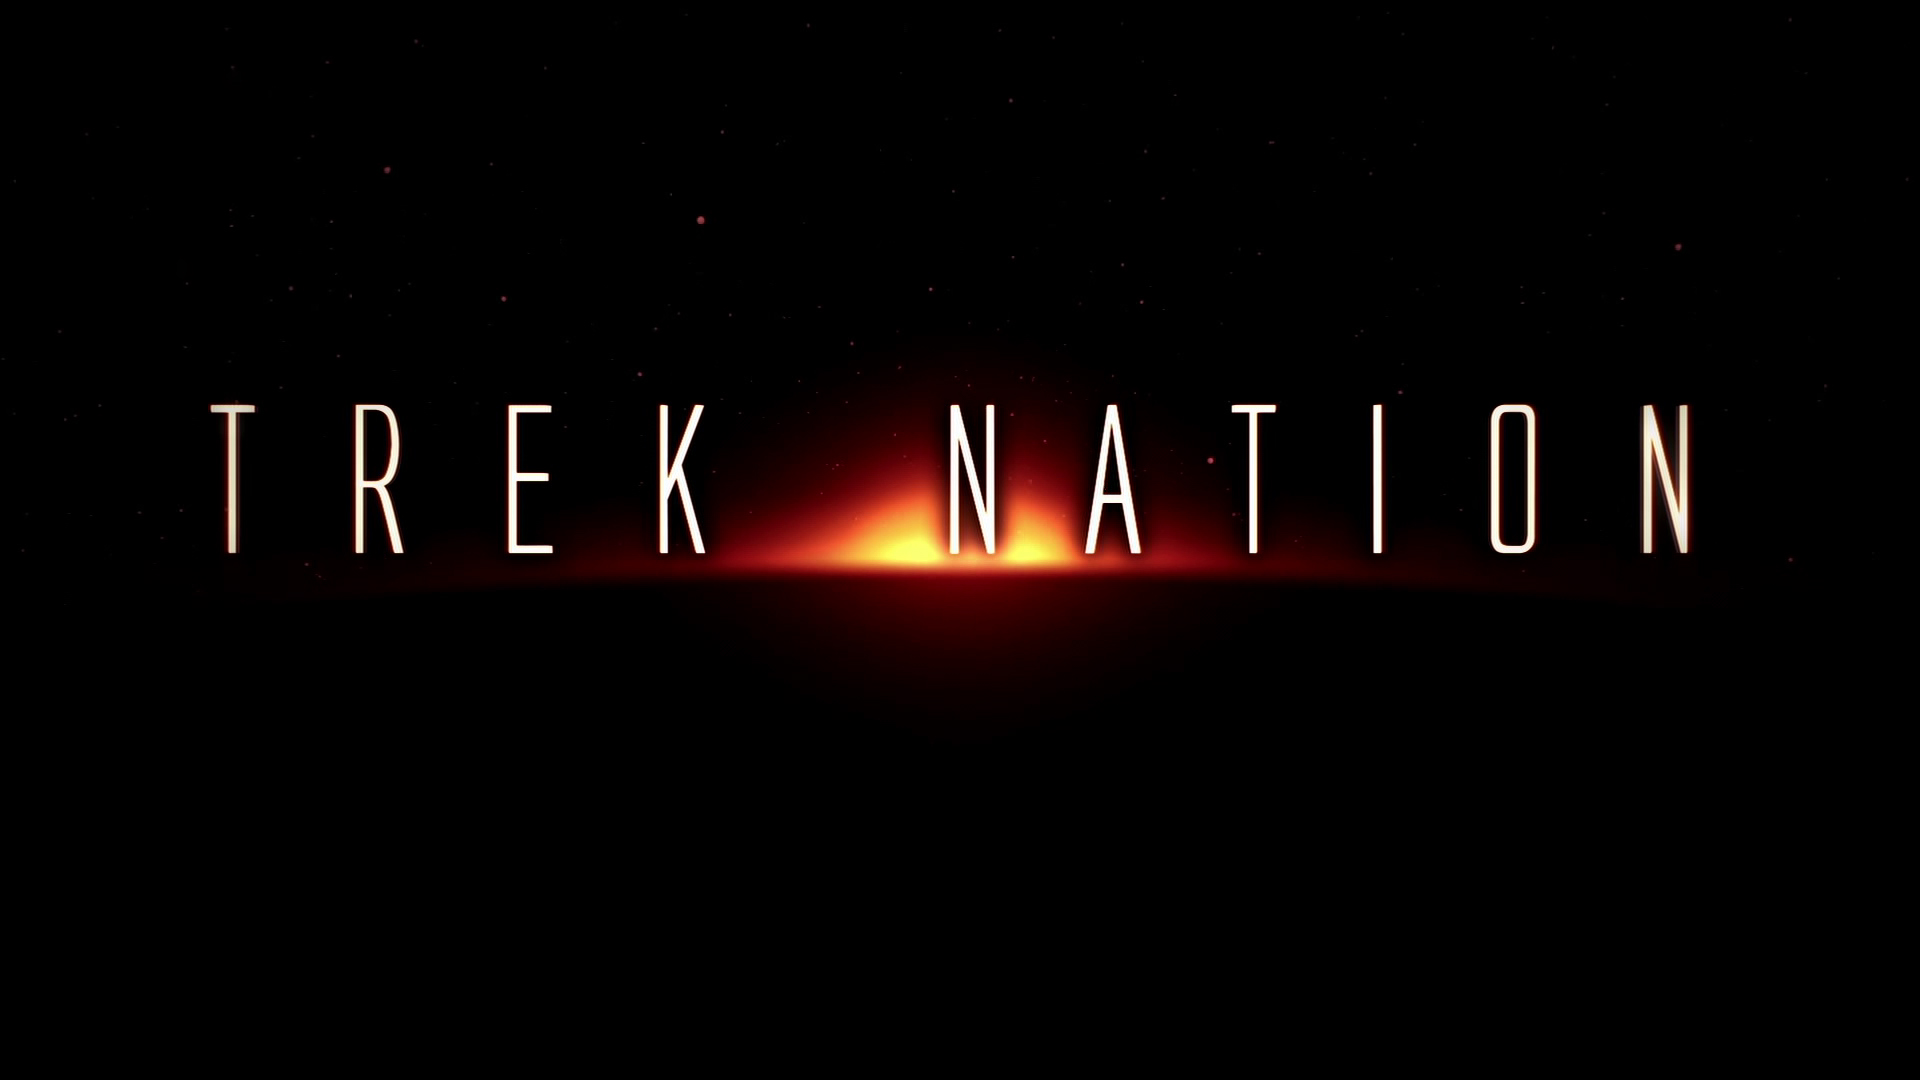 Trek_Nation_logo